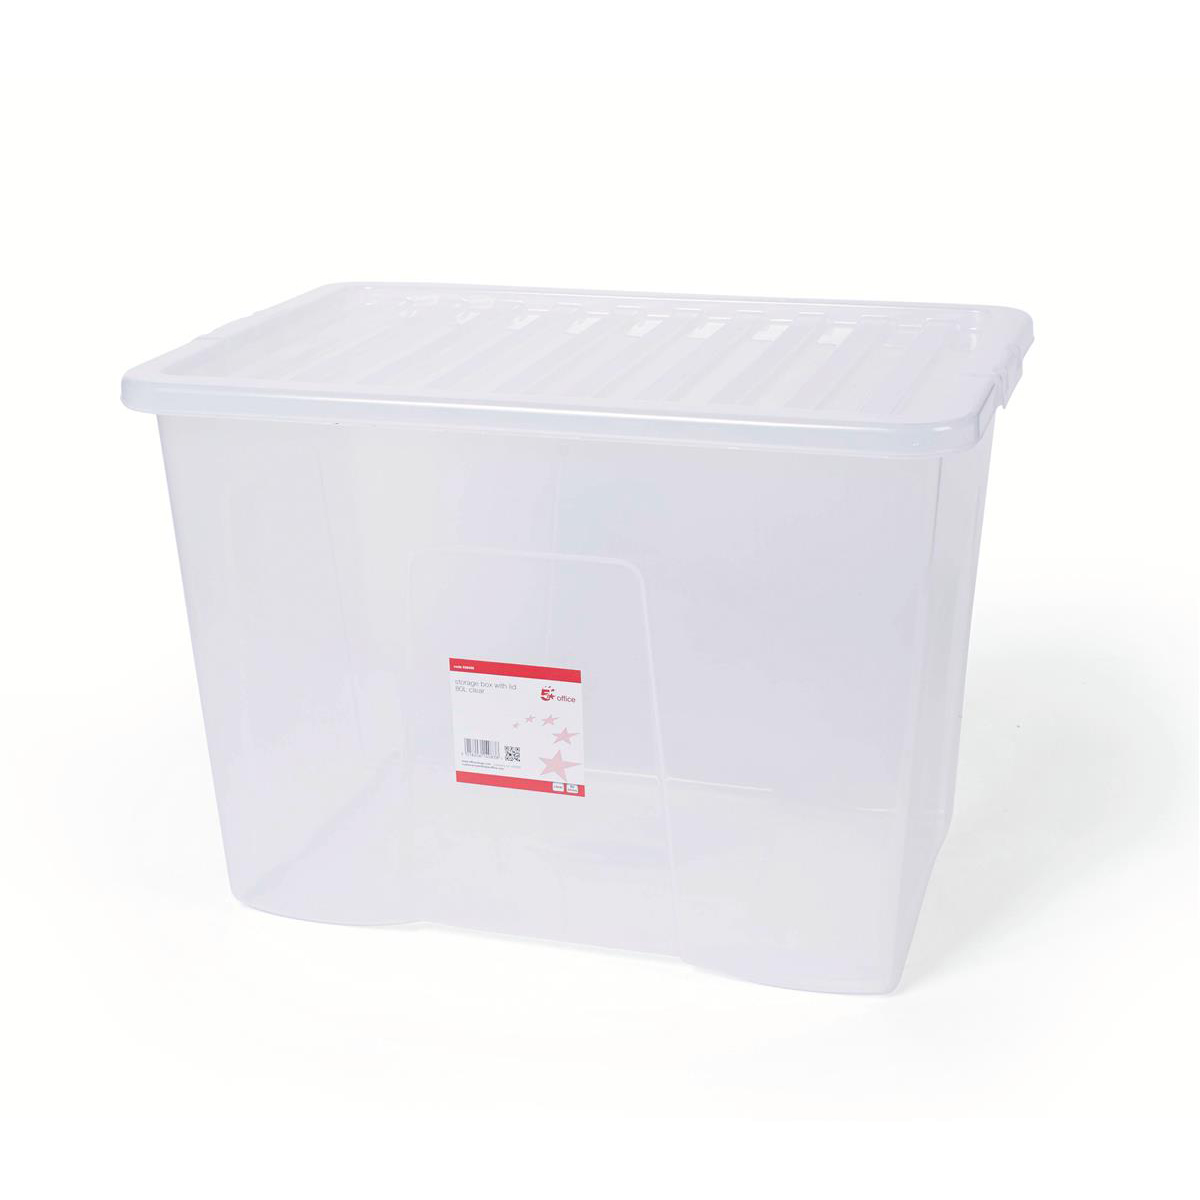 Tool Boxes 5 Star Office Storage Box Plastic with Lid Stackable 80 Litre Clear